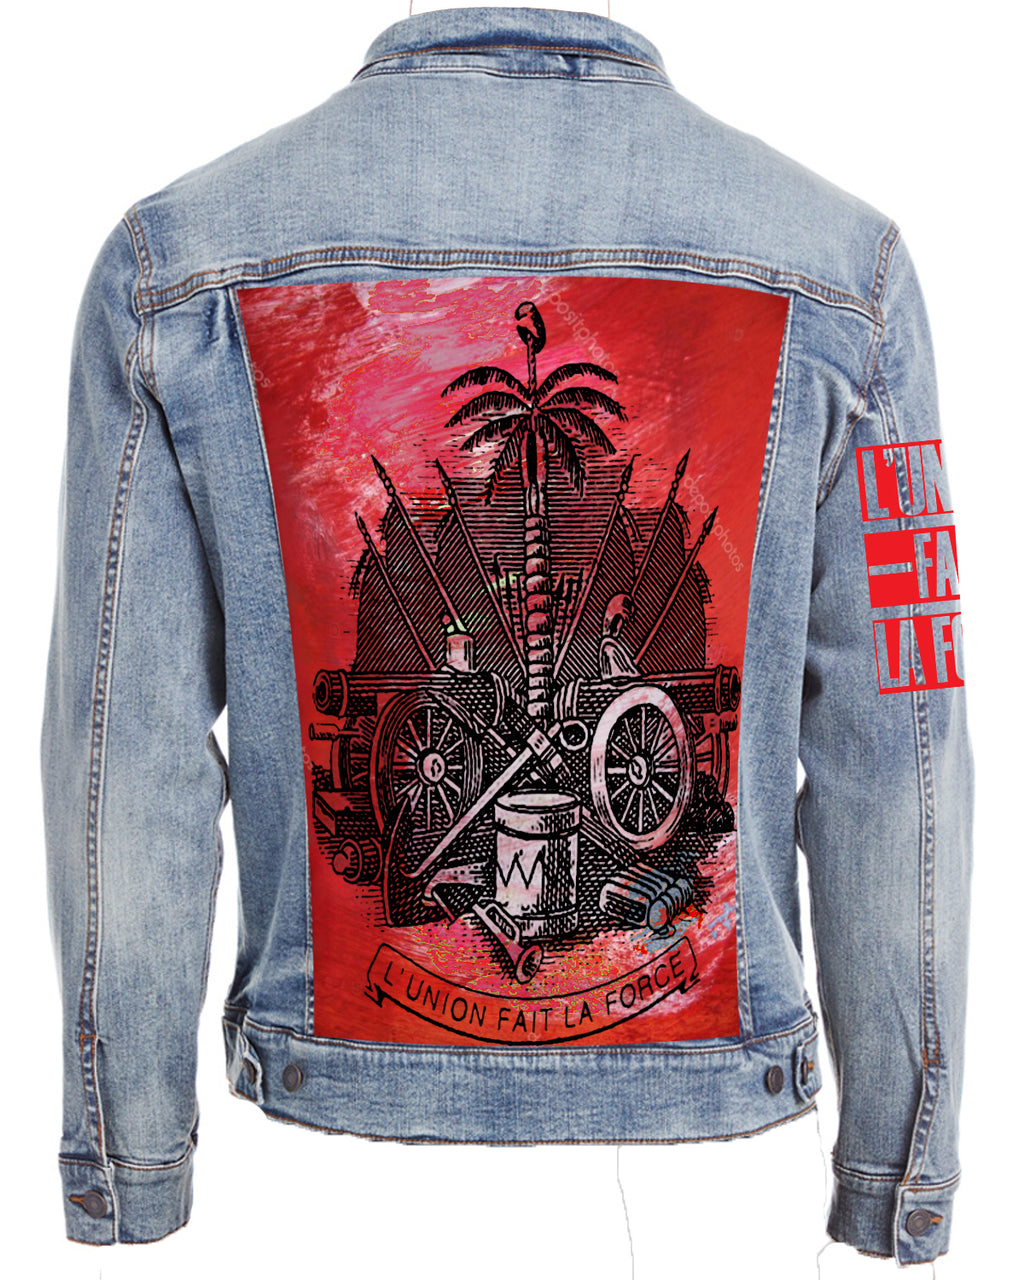 VINTAGE CREST DENIM JACKET-HAND PAINTED/INNER PRINT DESIGN (UNISEX)